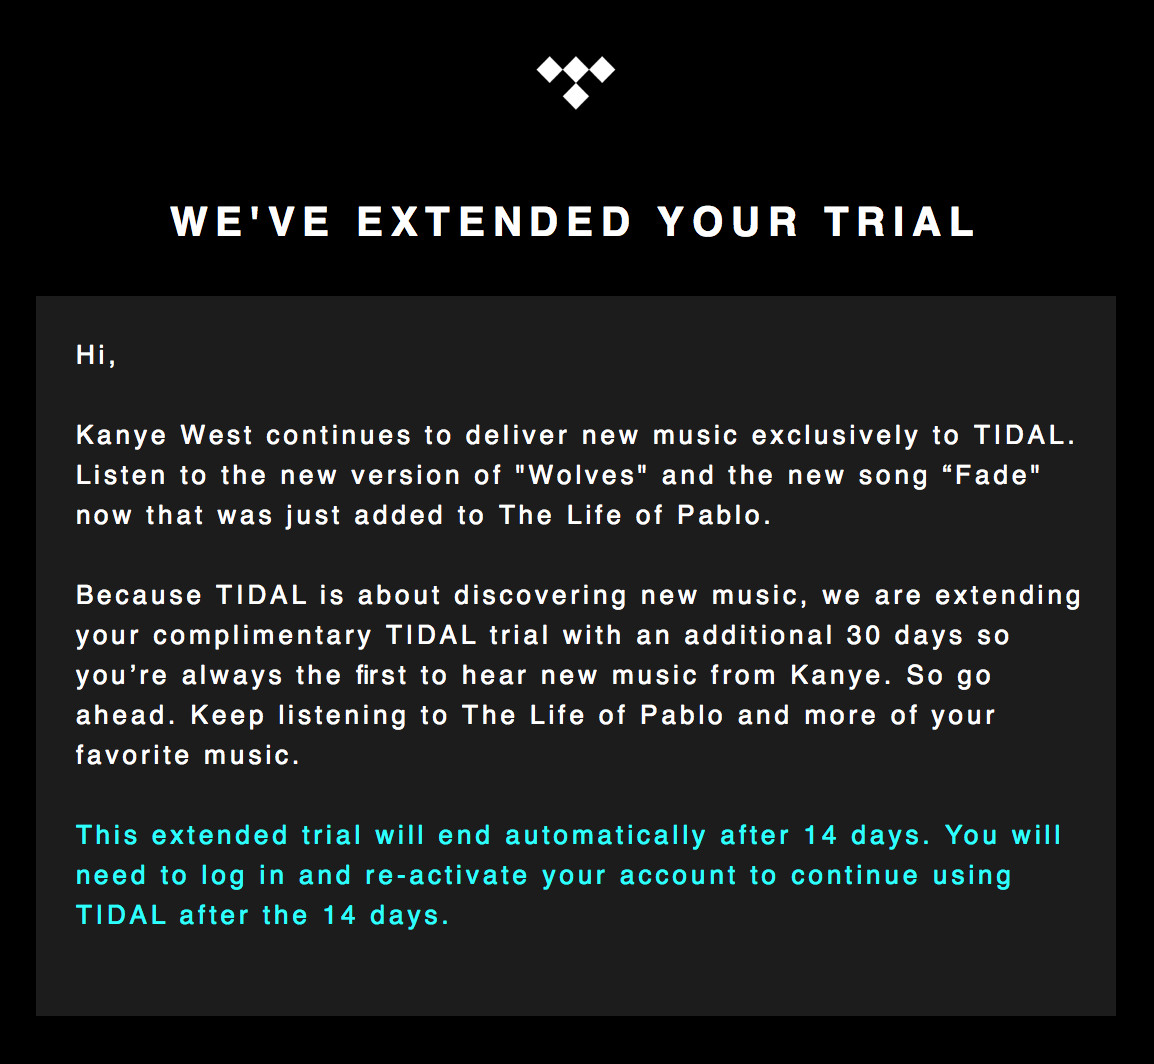 tidal-free-trial-extended-kanye